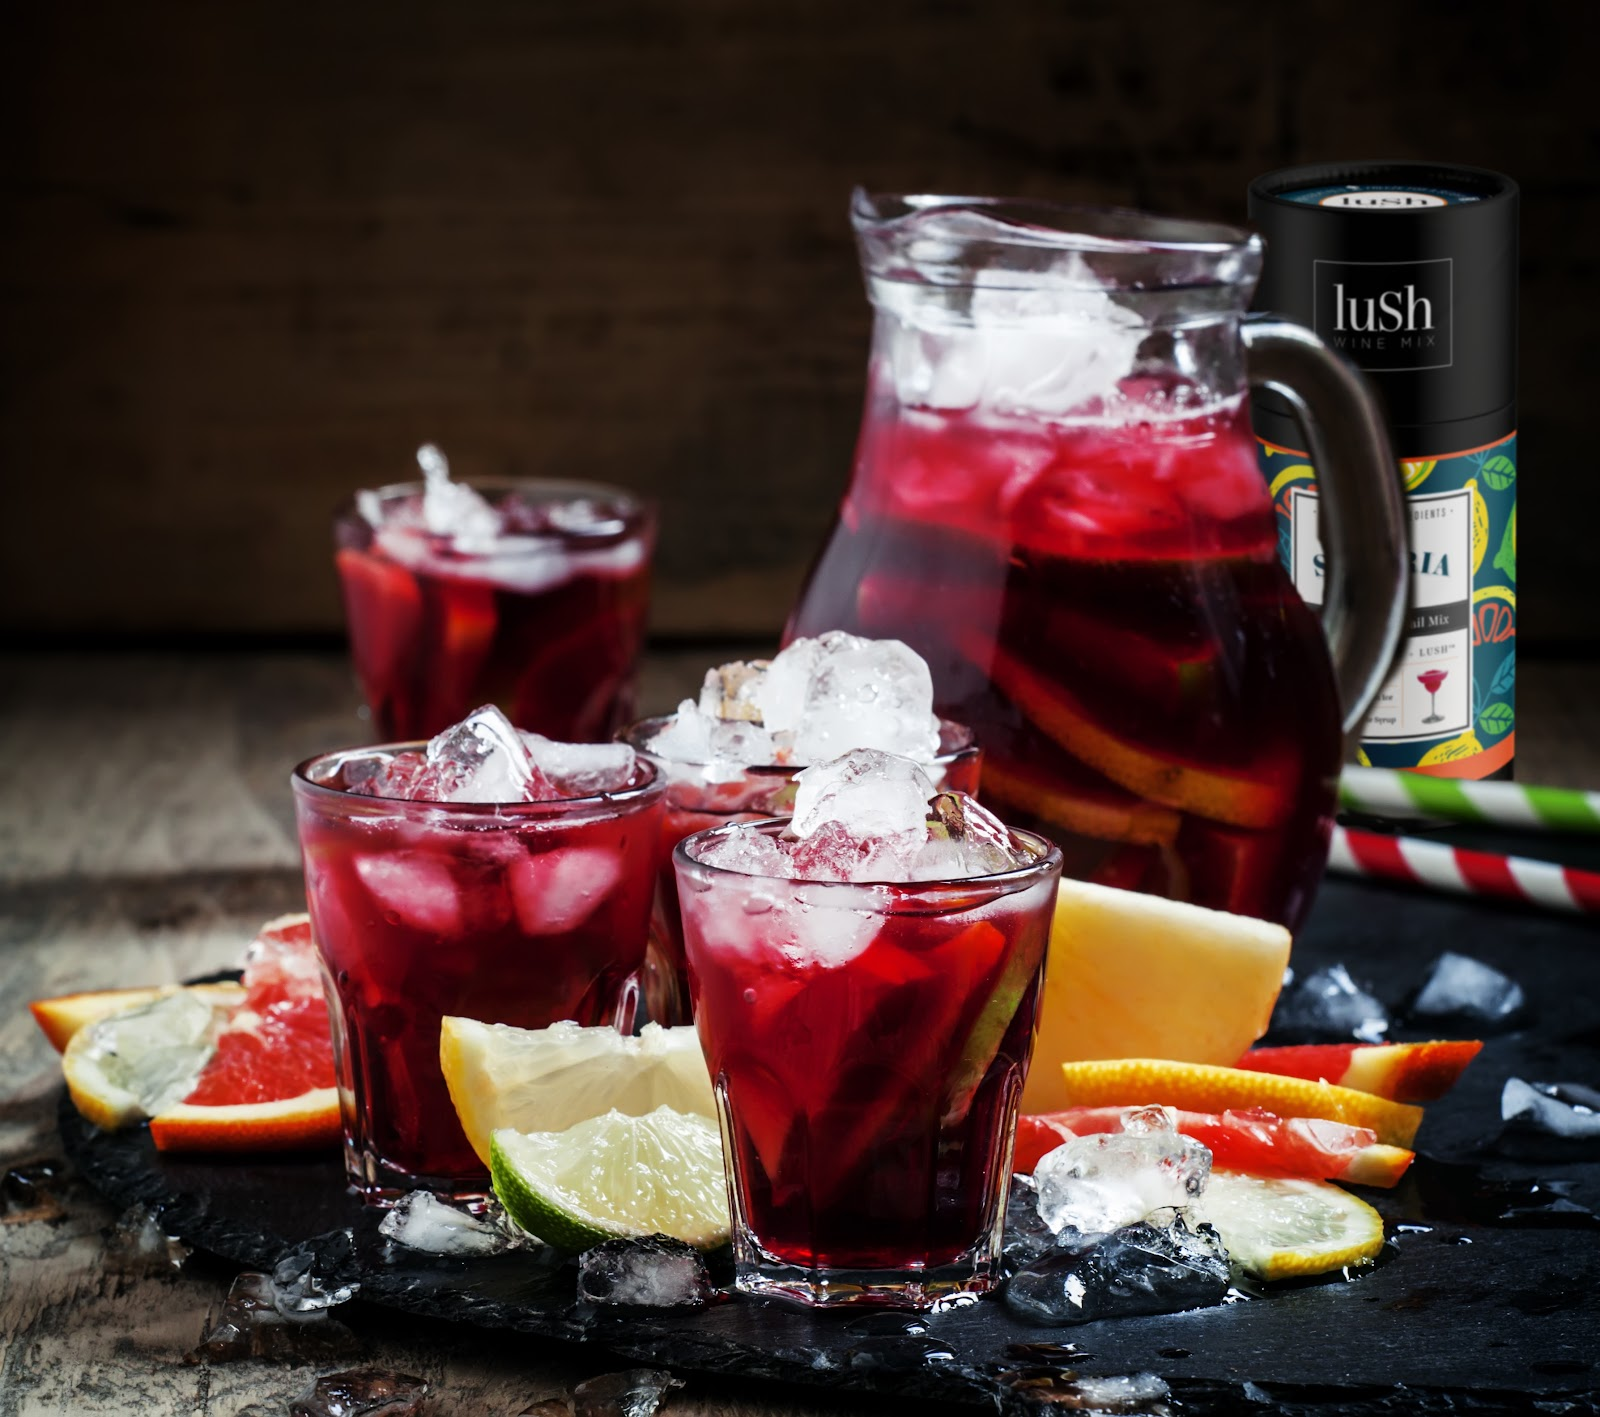 Lush Wine Mix sangria